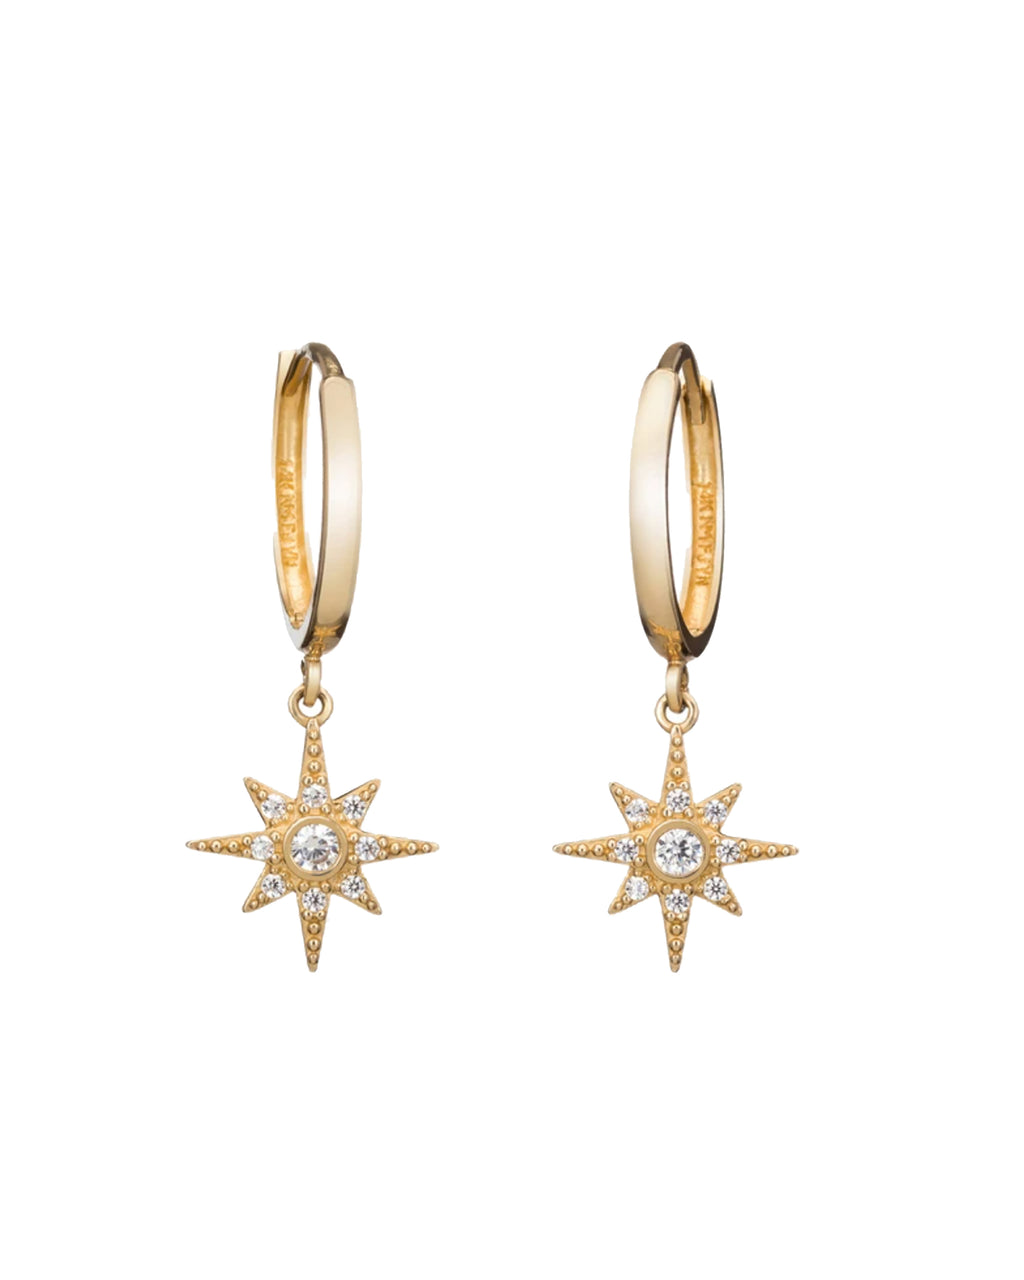 NME1010 - Mini Starburst Dangle Hoop - accessories - fine jewelry - UP YOUR EAR GAME WITH THESE MINI STAR DANGLE HOOPS. MADE FROM 14-KARAT GOLD AND CUBIC ZIRCONIA, THESE DAINTY HOOPS ARE AN EVERYDAY STYLE WITH EDGE.